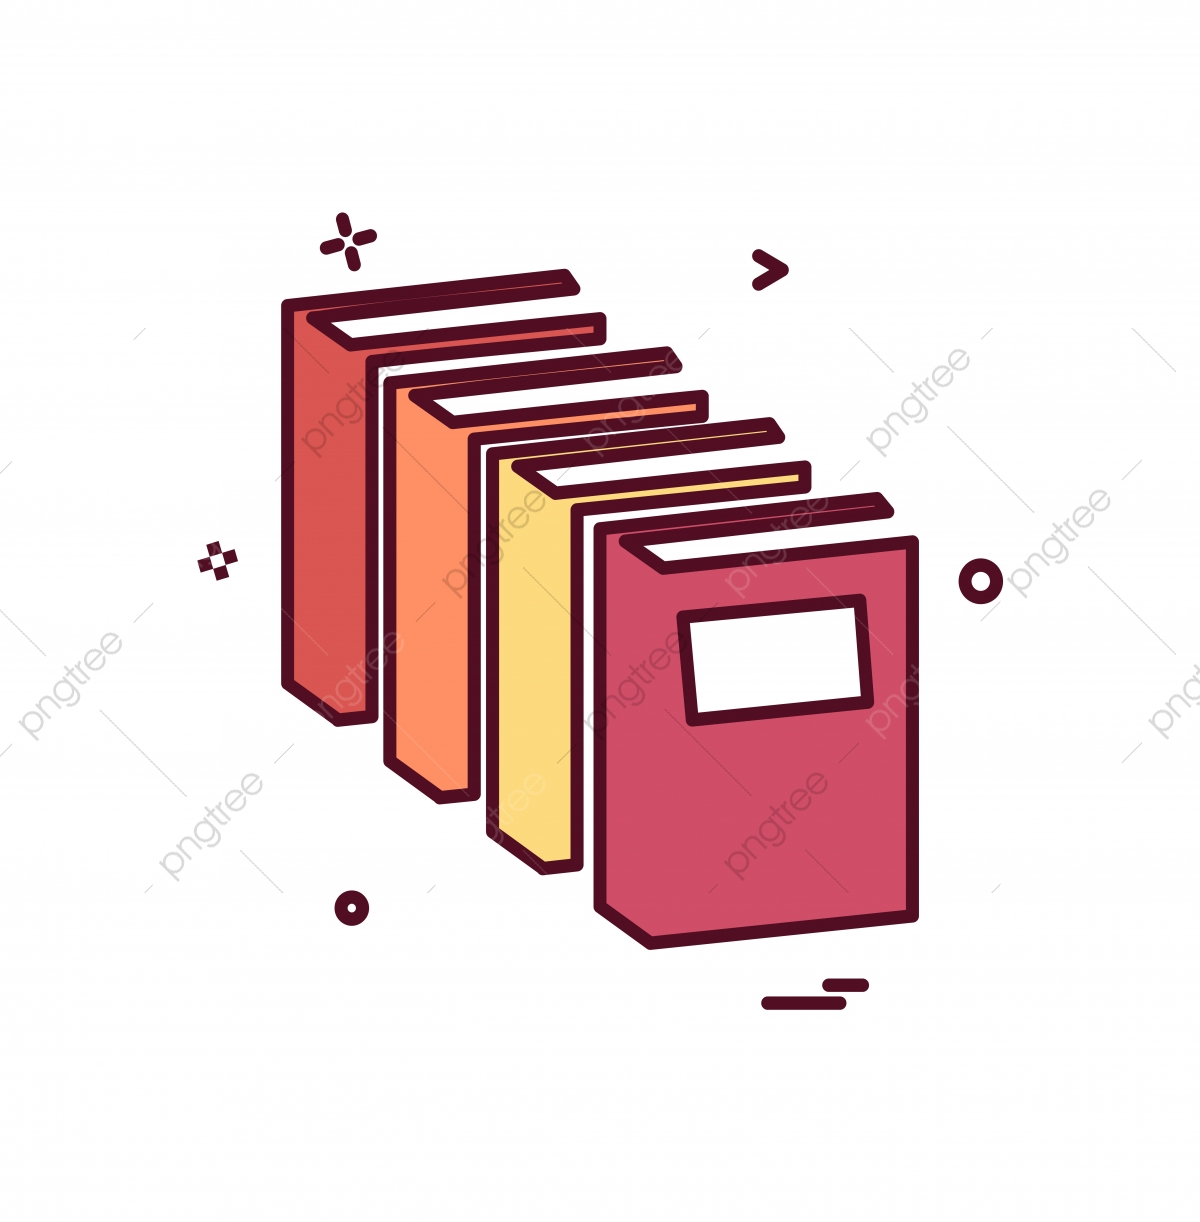 Books Icon Design Vector, Book, Icon, Illustration PNG and Vector.